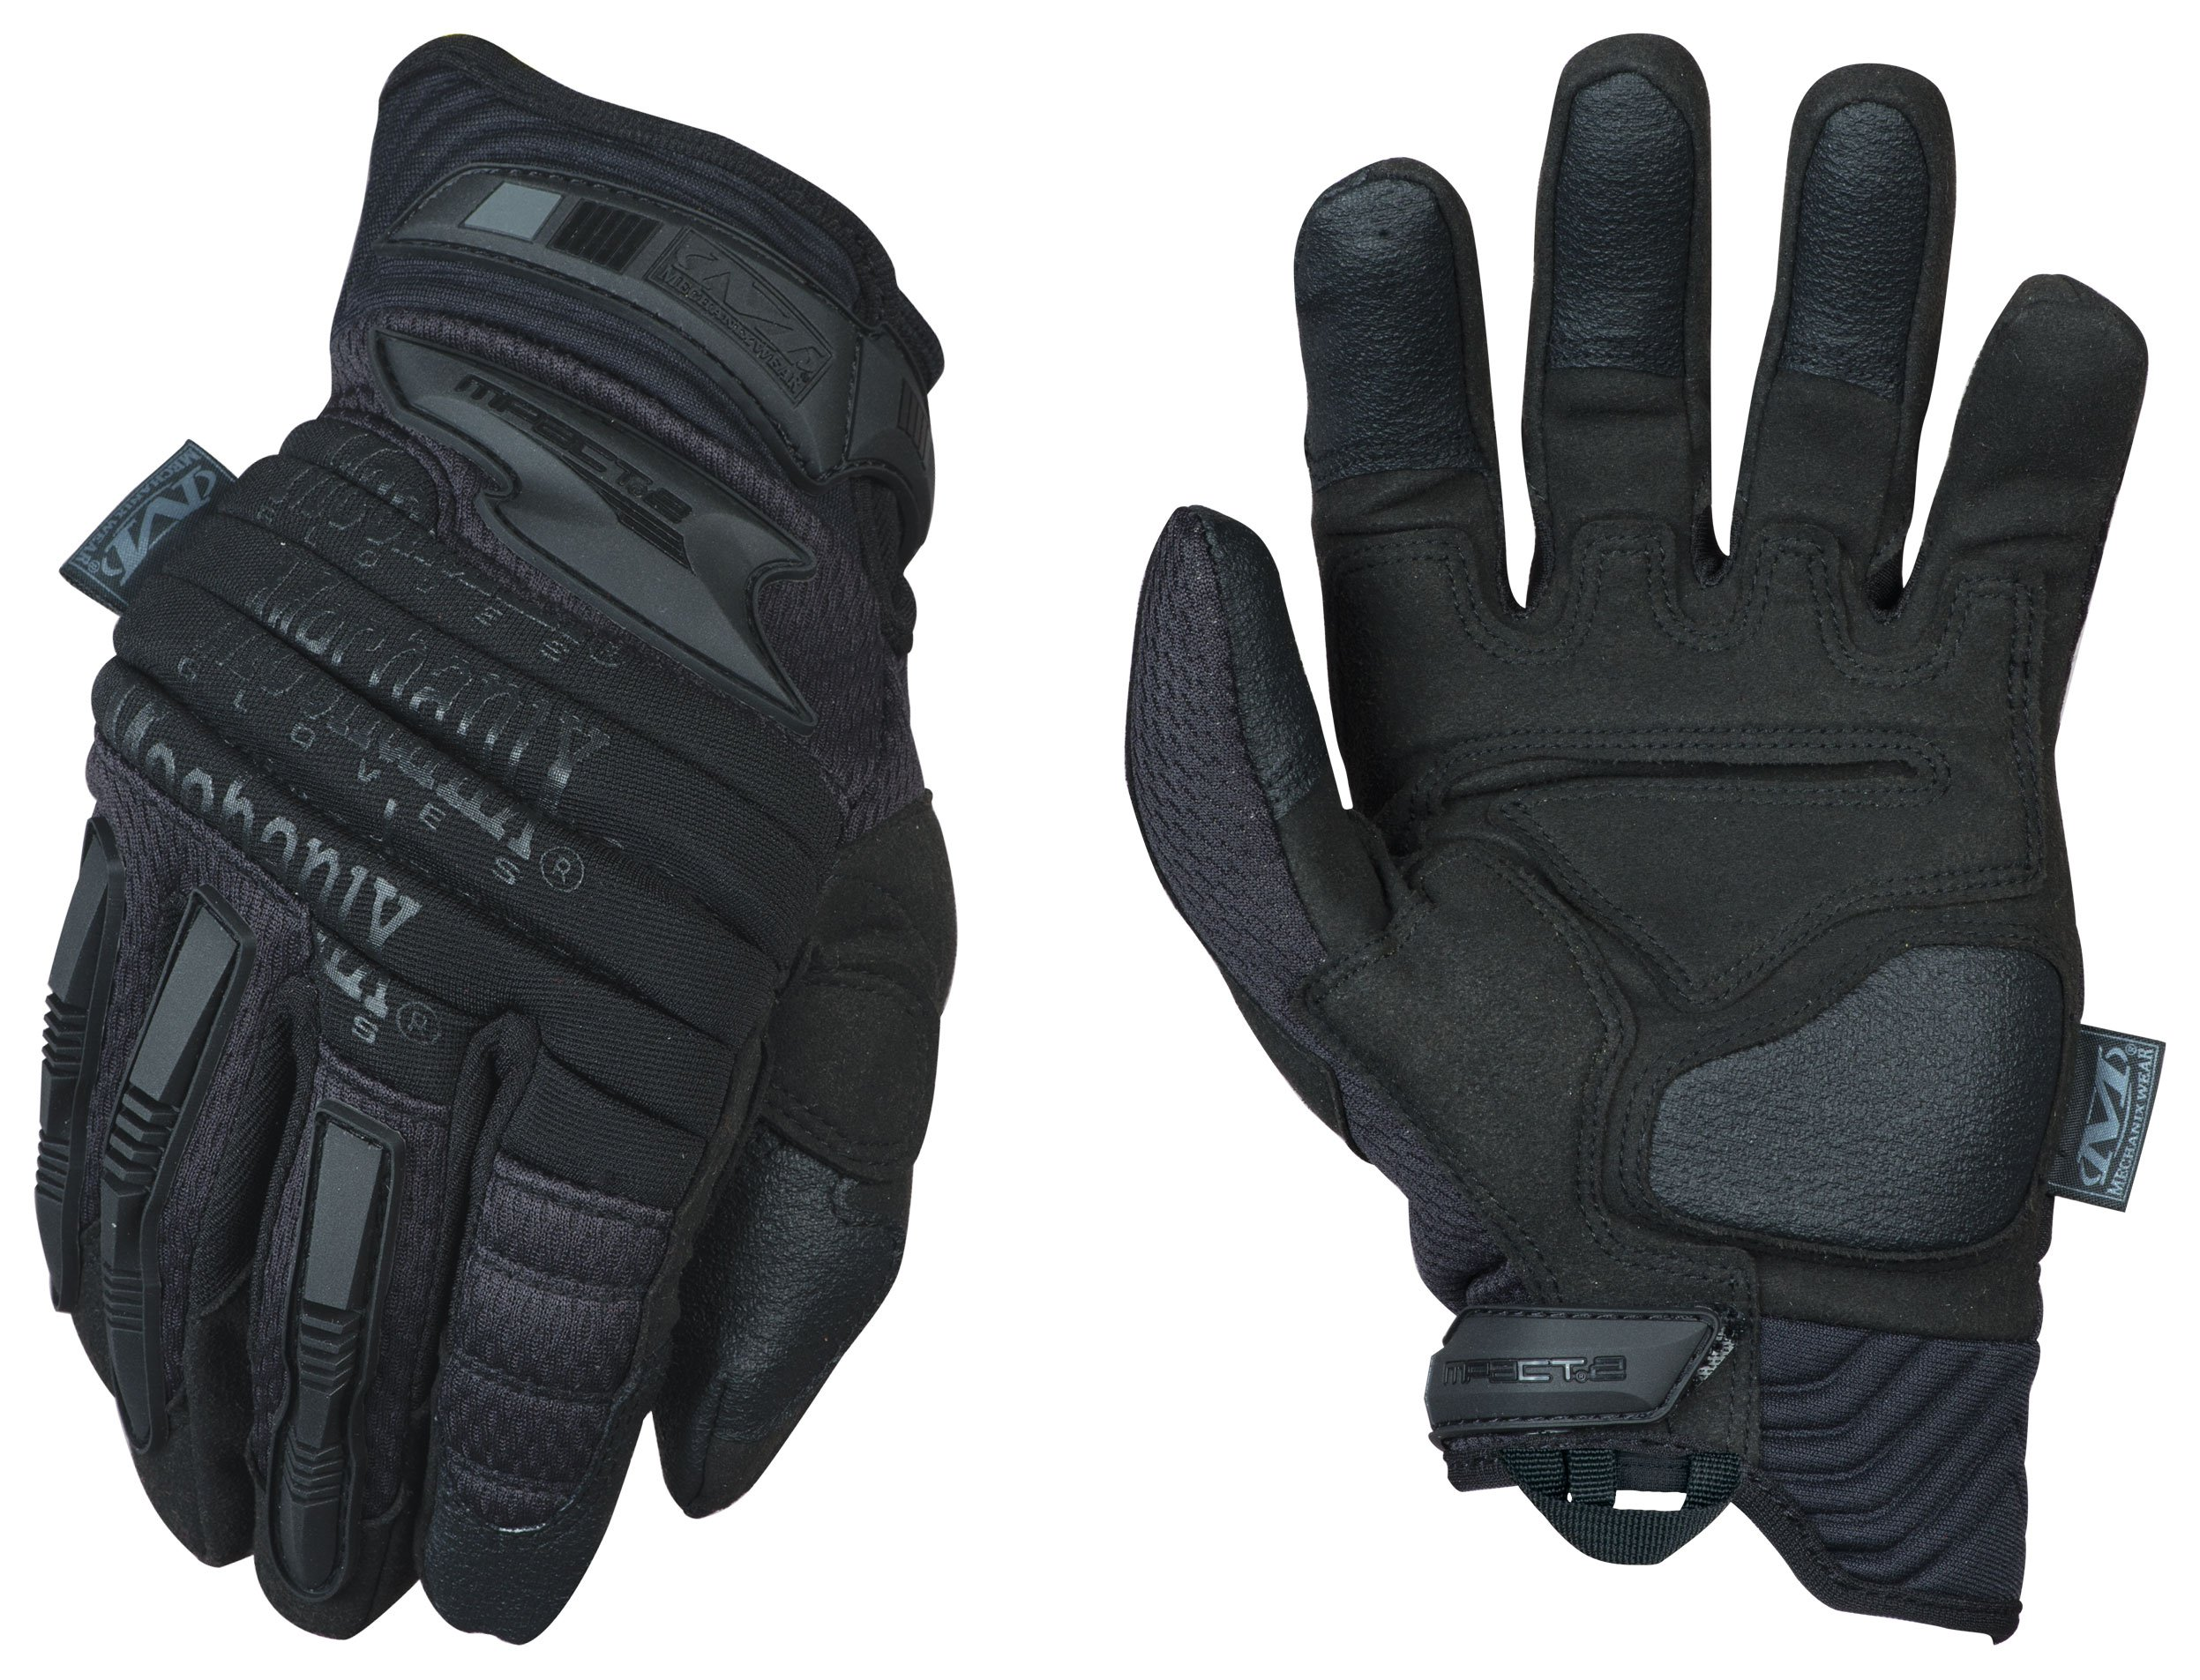 Mechanix Wear - M-Pact 2 Covert Tactical Gloves (X-Large, Black) by Mechanix Wear